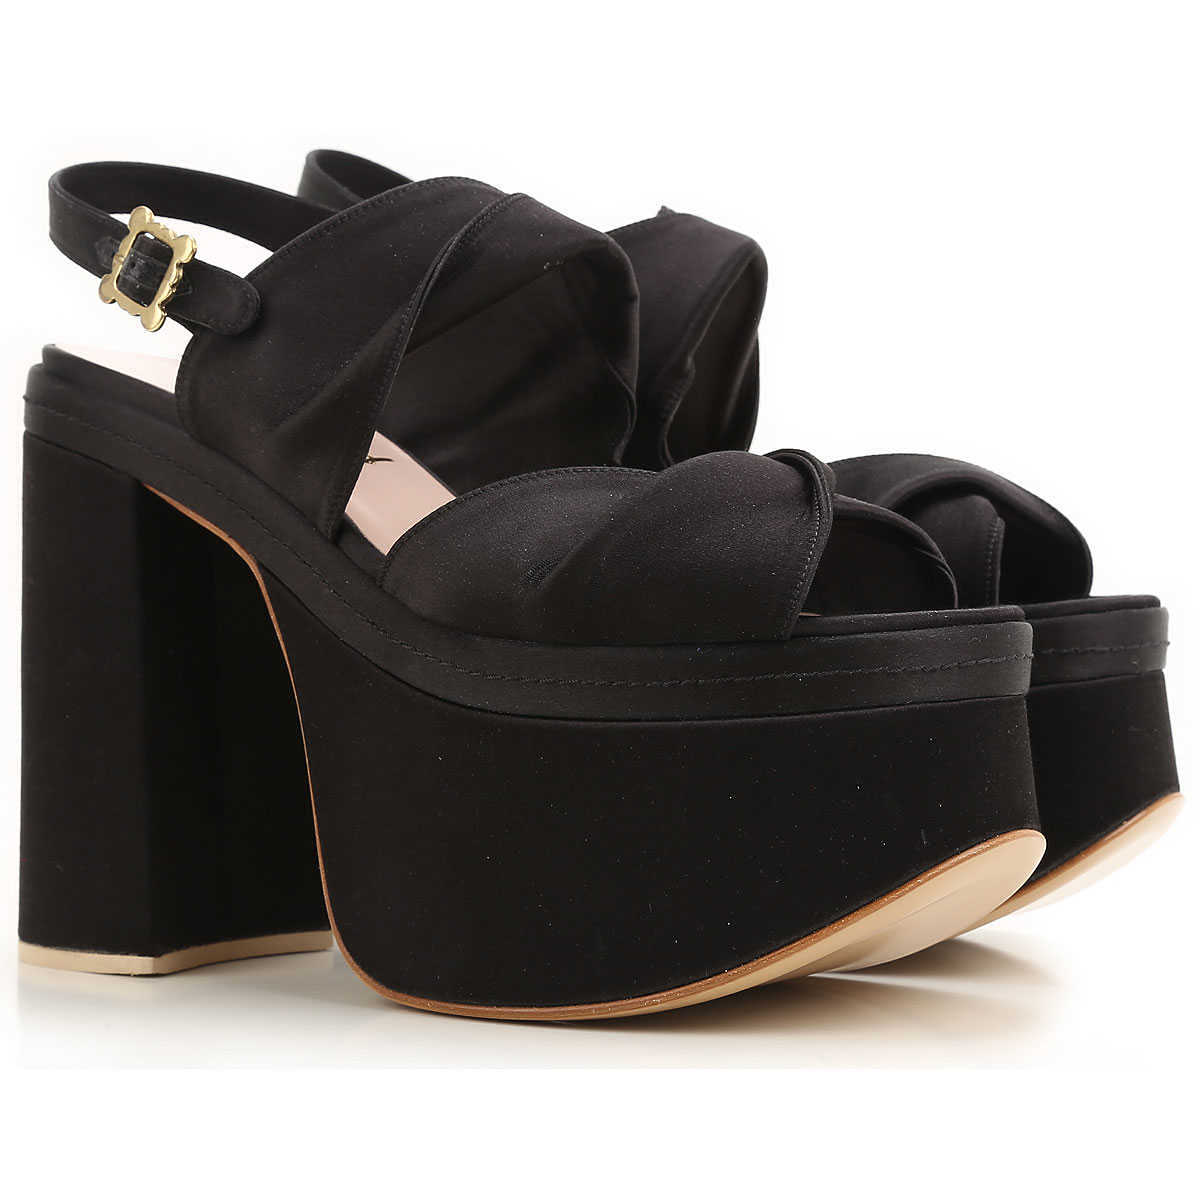 Vivienne Westwood Wedges for Women Black Canada - GOOFASH - Womens HOUSE SHOES